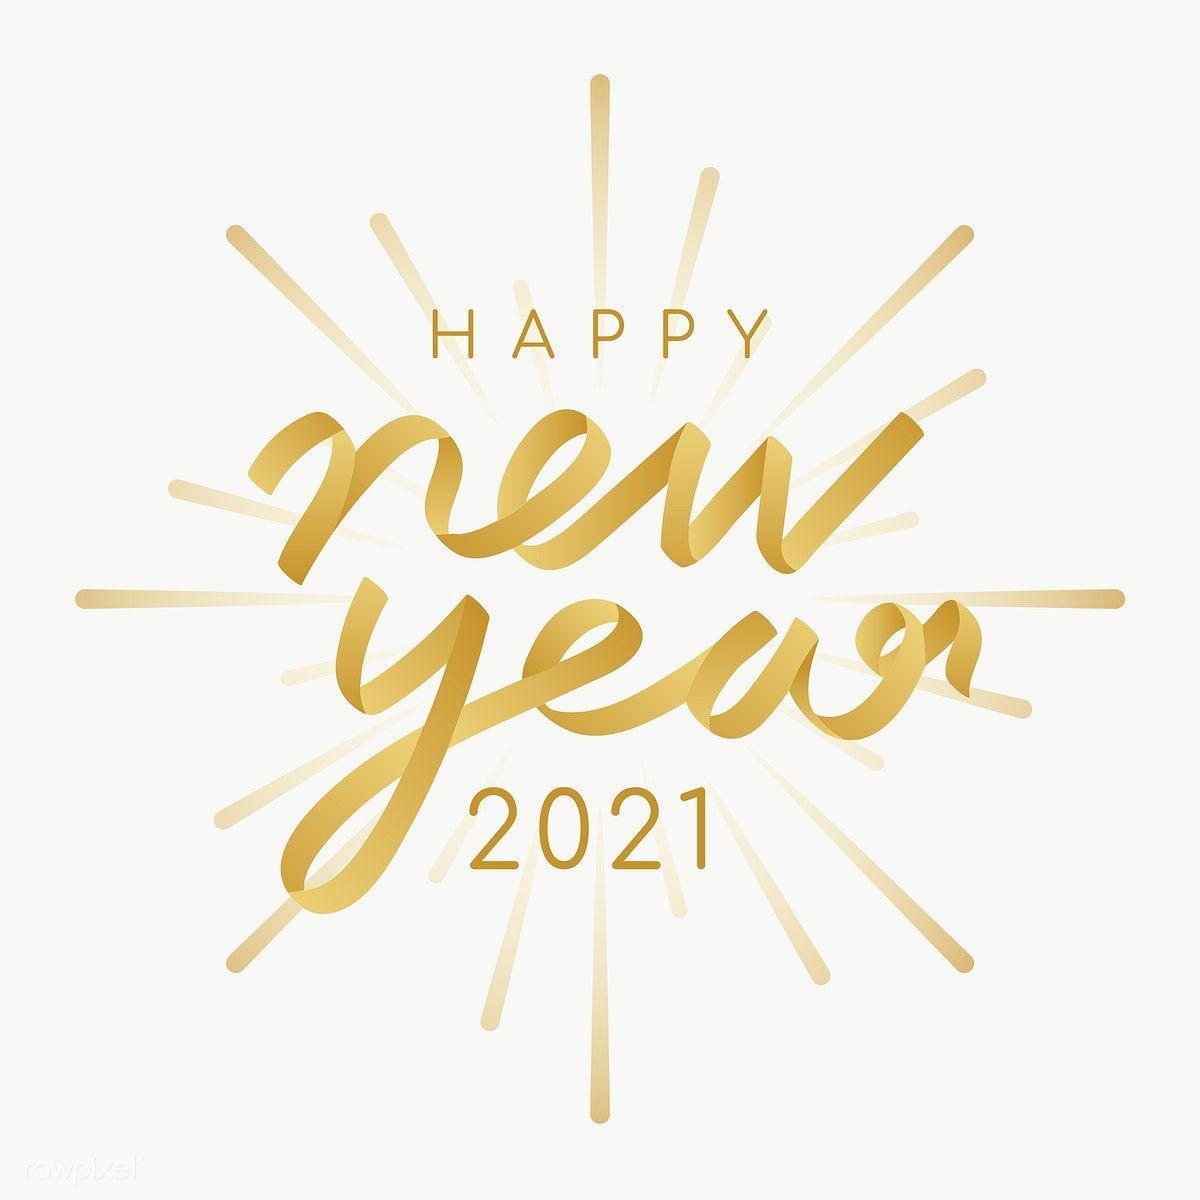 Download Free Png Of Happy New Year 2021 Transparent Png 1234501